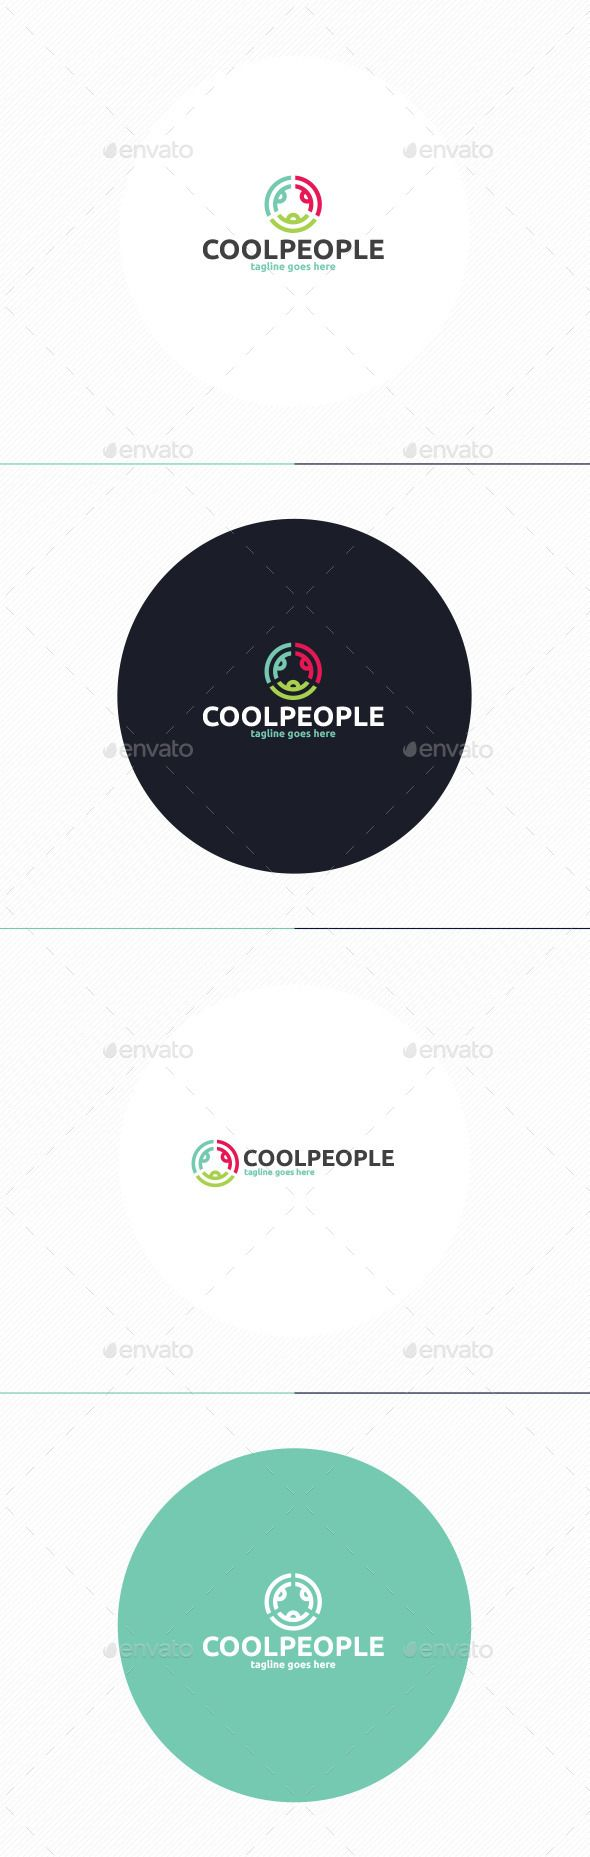 Cool People Logo Template PSD, Vector EPS, AI #logotype Download here: http://graphicriver.net/item/cool-people-logo/10271778?ref=ksioks